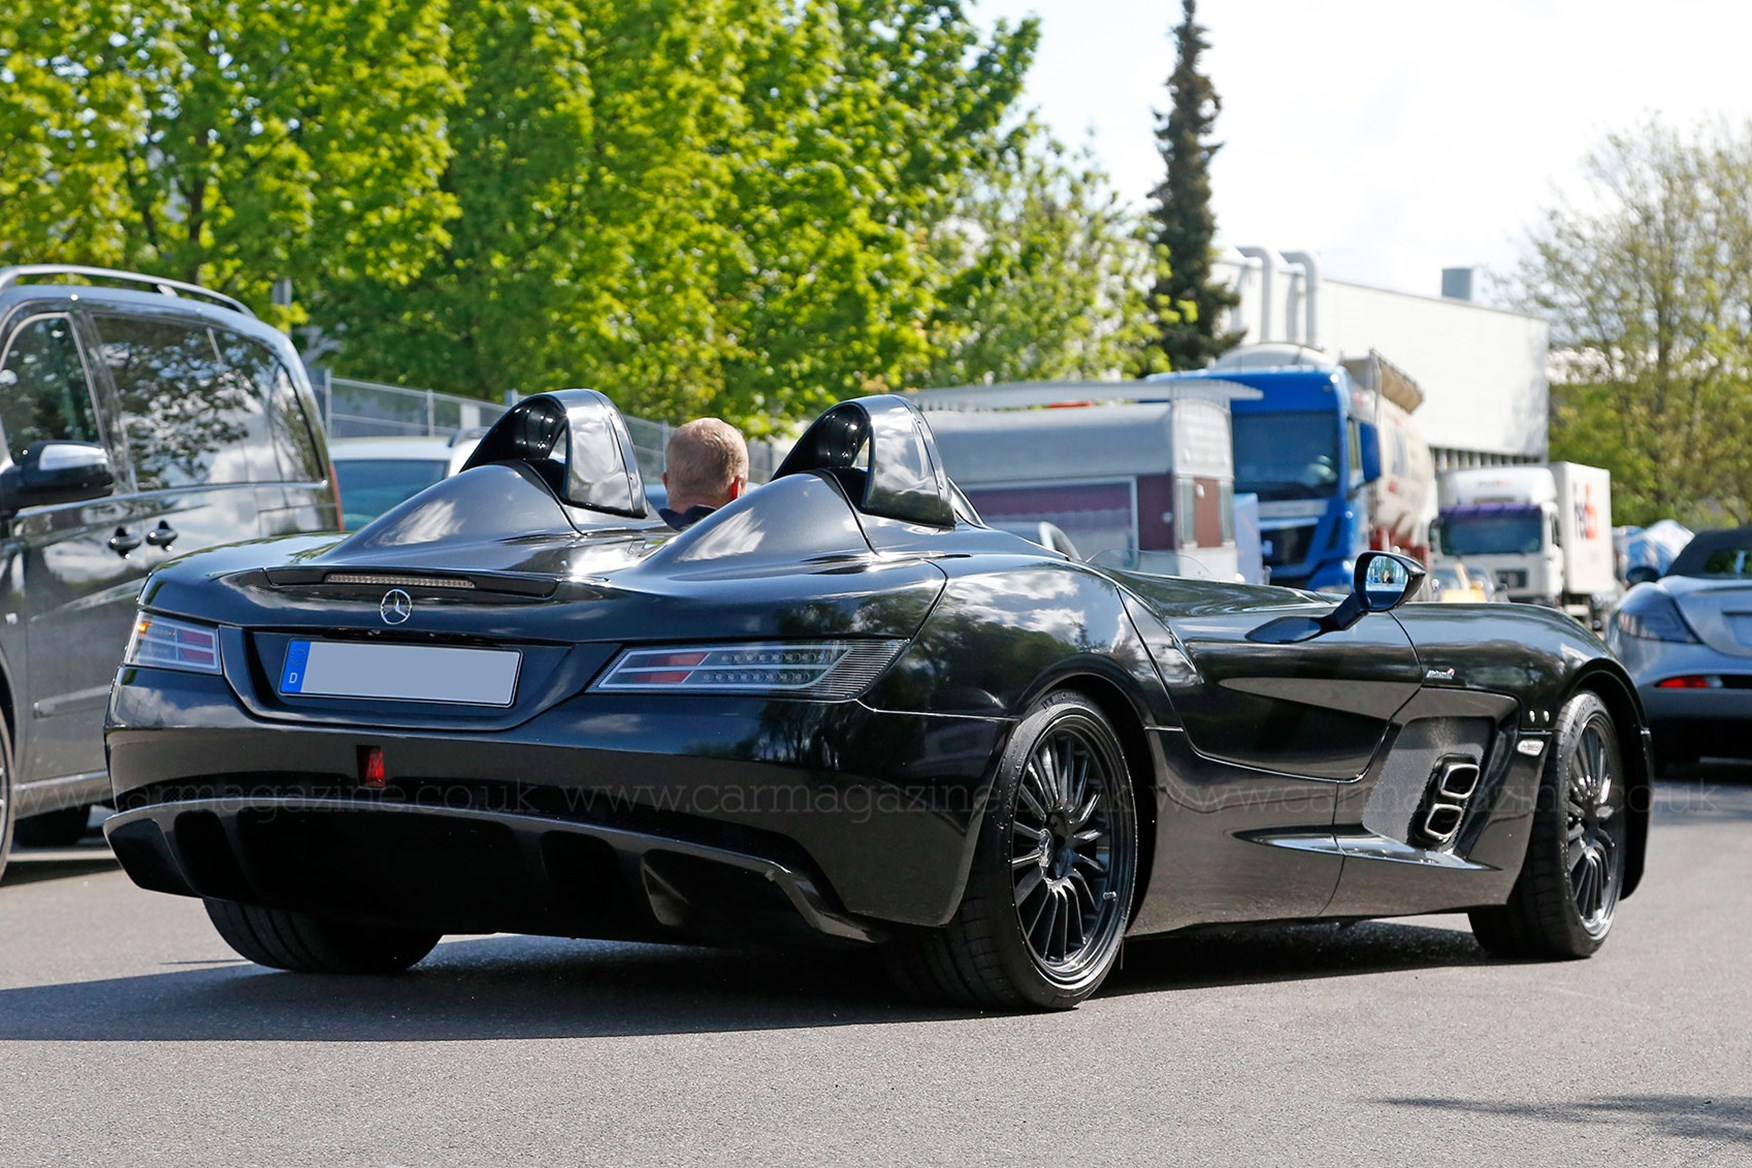 ... The Mercedes SLR Stirling Moss Cost £660,000 New ...